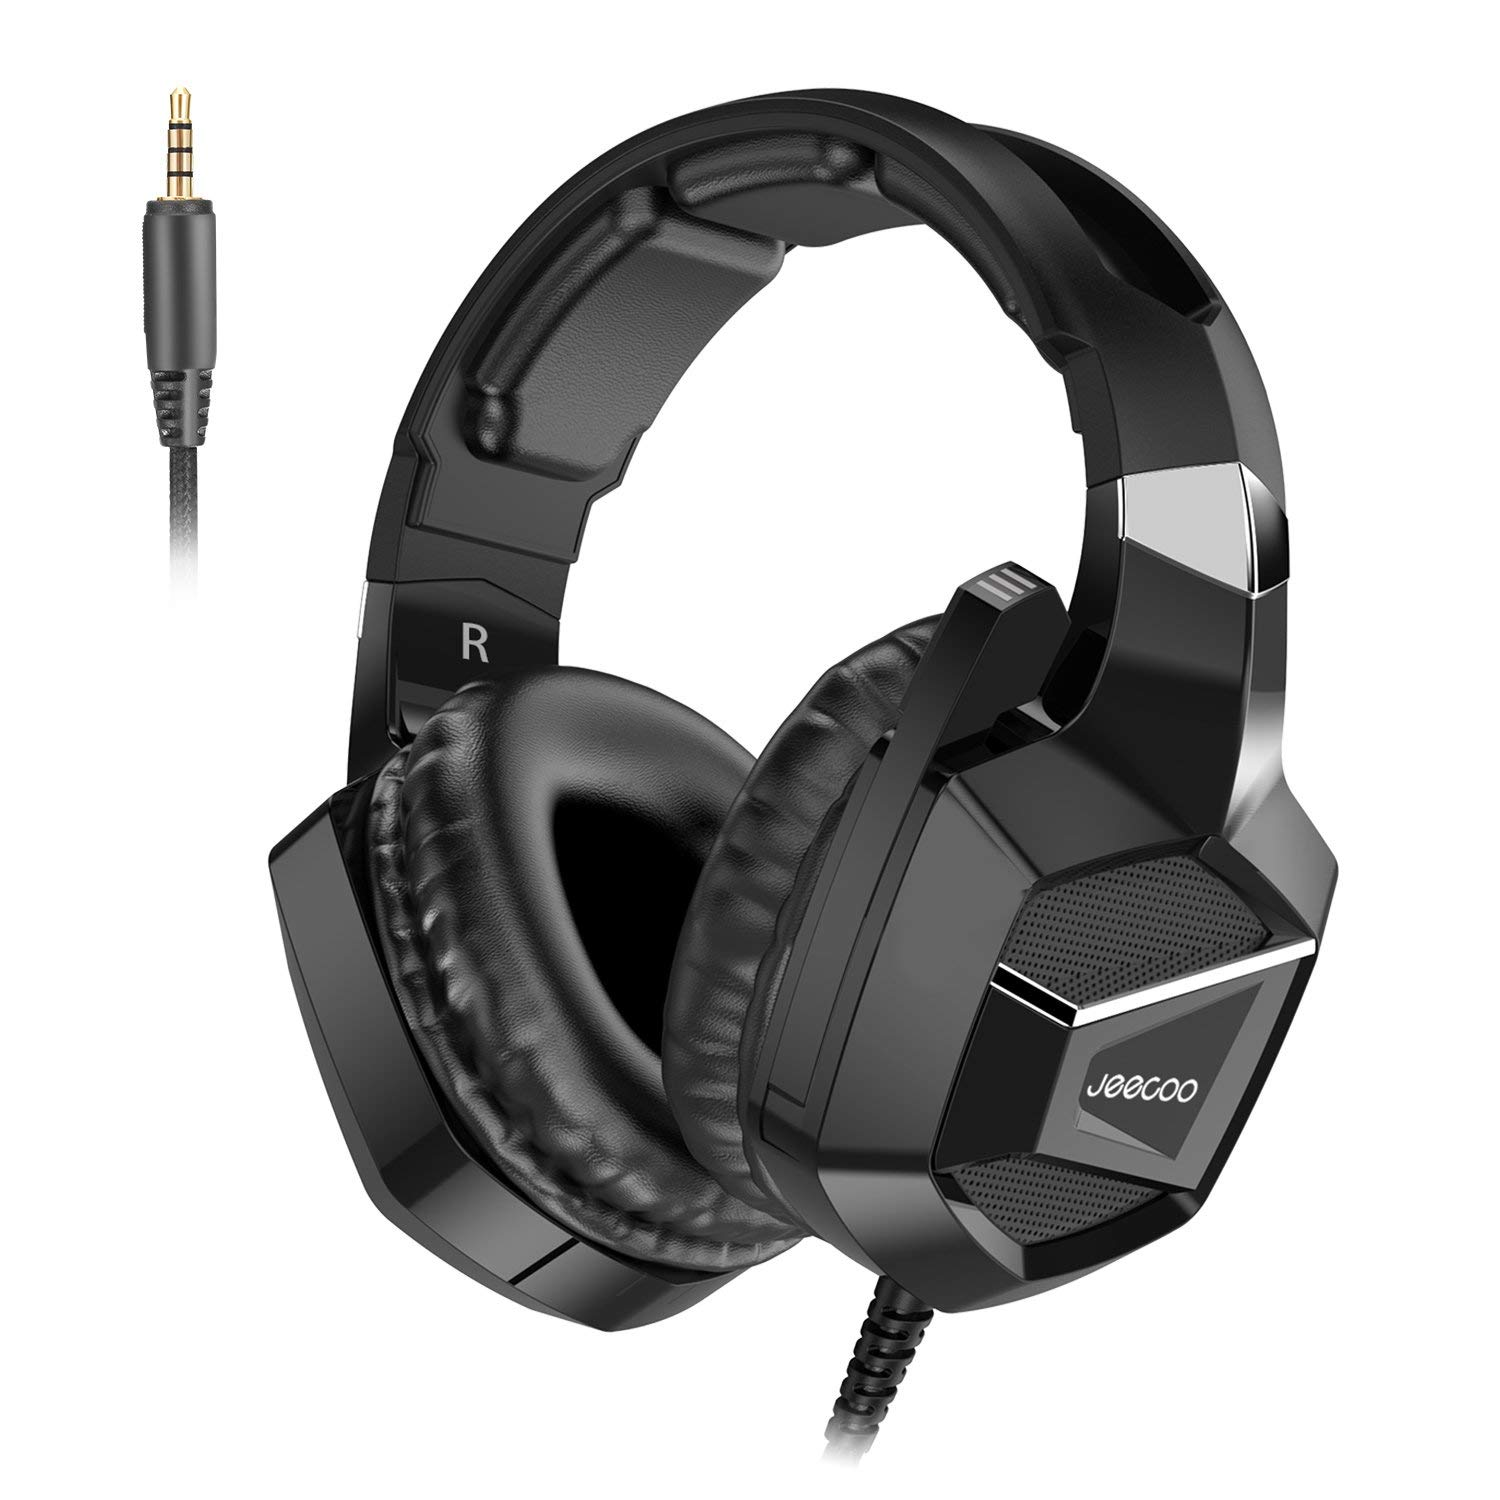 Jeecoo J20 Stereo Gaming Headset for PS4, Pro, Xbox One S, Xbox One Controller, Noise Cancelling Over Ear Headphones with Mic, Bass Surround Soft Memory Earmuffs for PC Nintendo Switch Games by Jeecoo